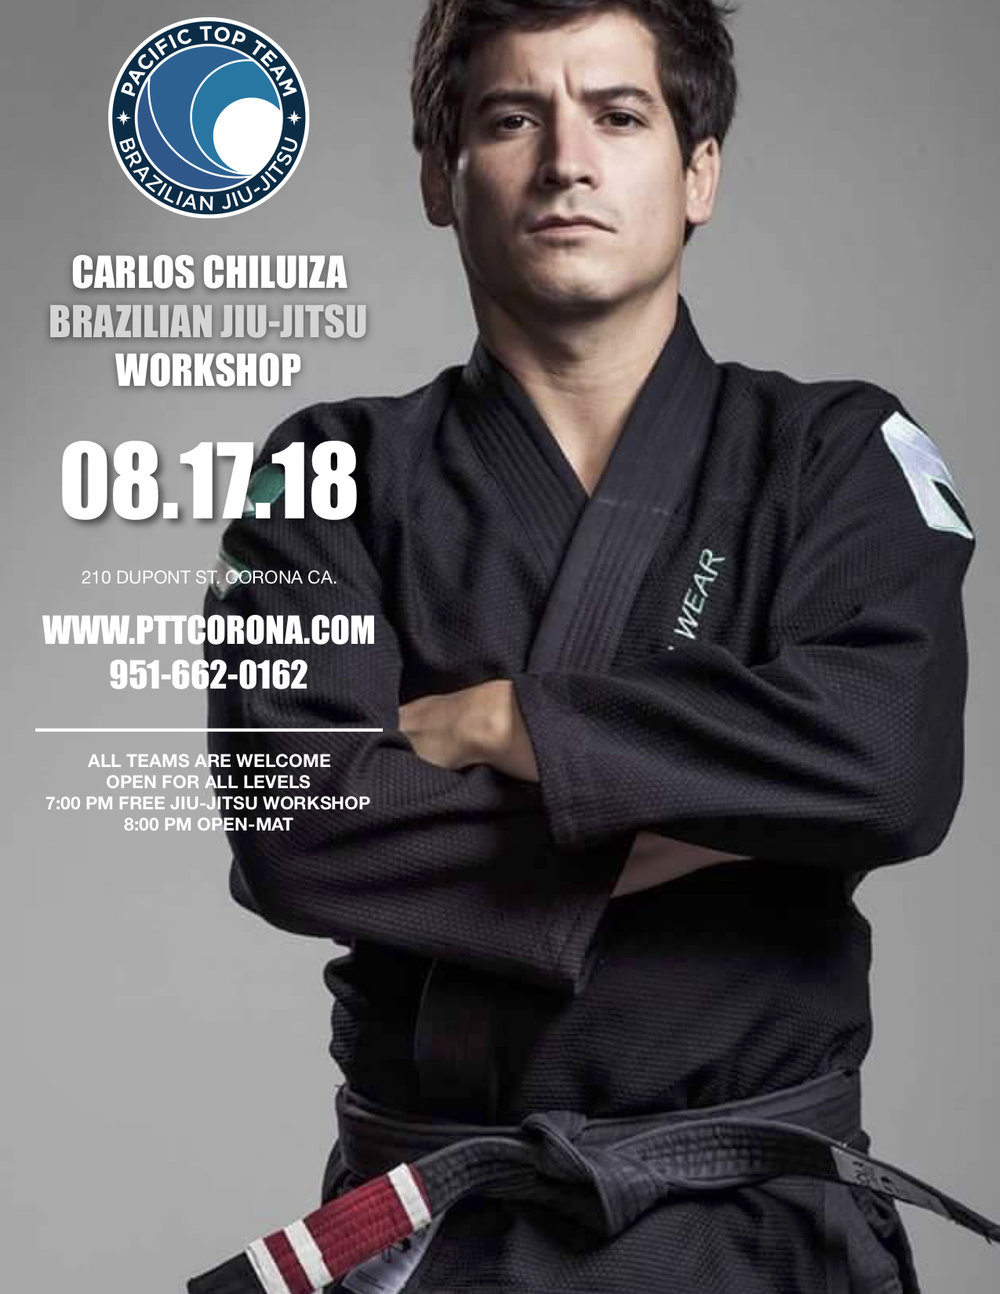 FREE JIU JITSU WORKSHOP IN CORONA